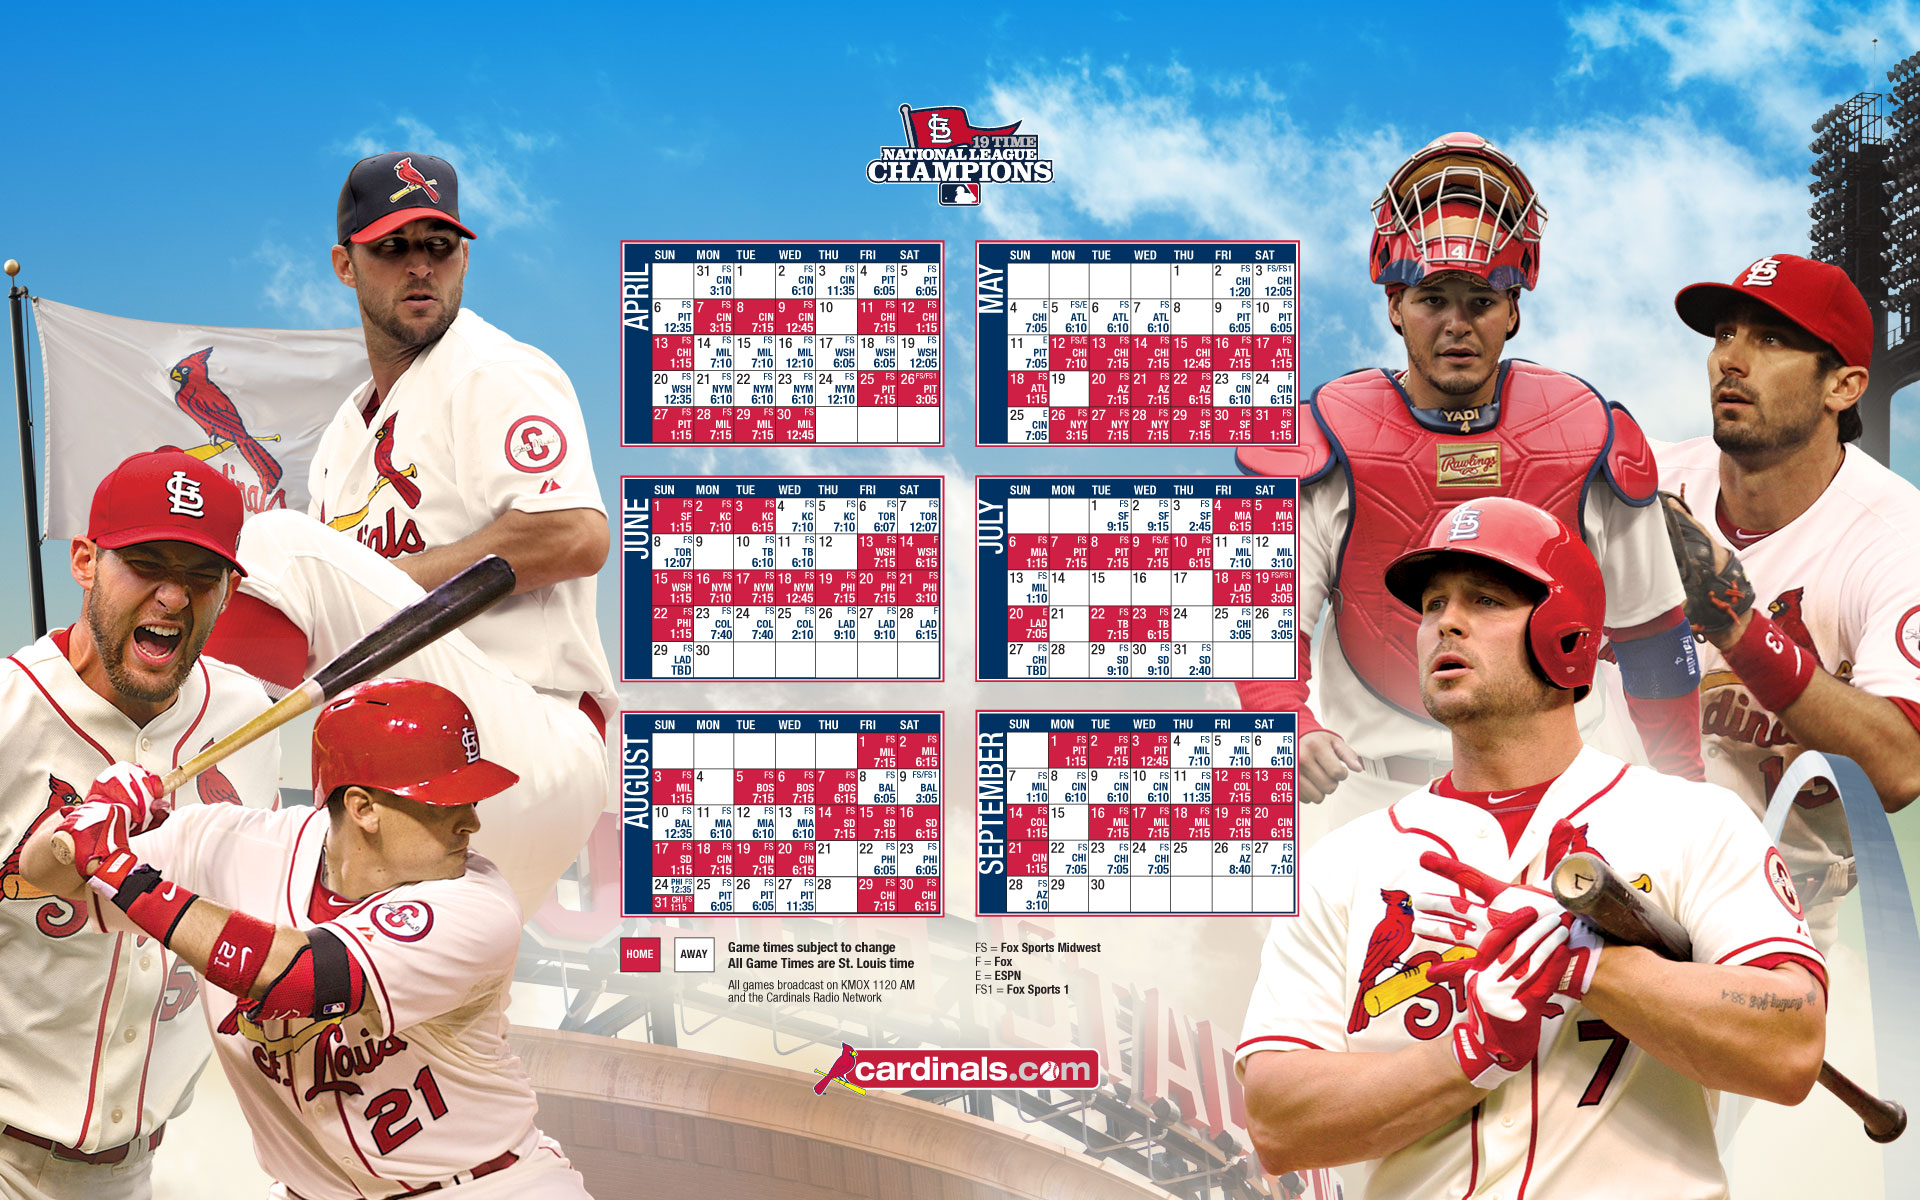 st louis cardinals 2016 schedule wallpaper - wallpapersafari